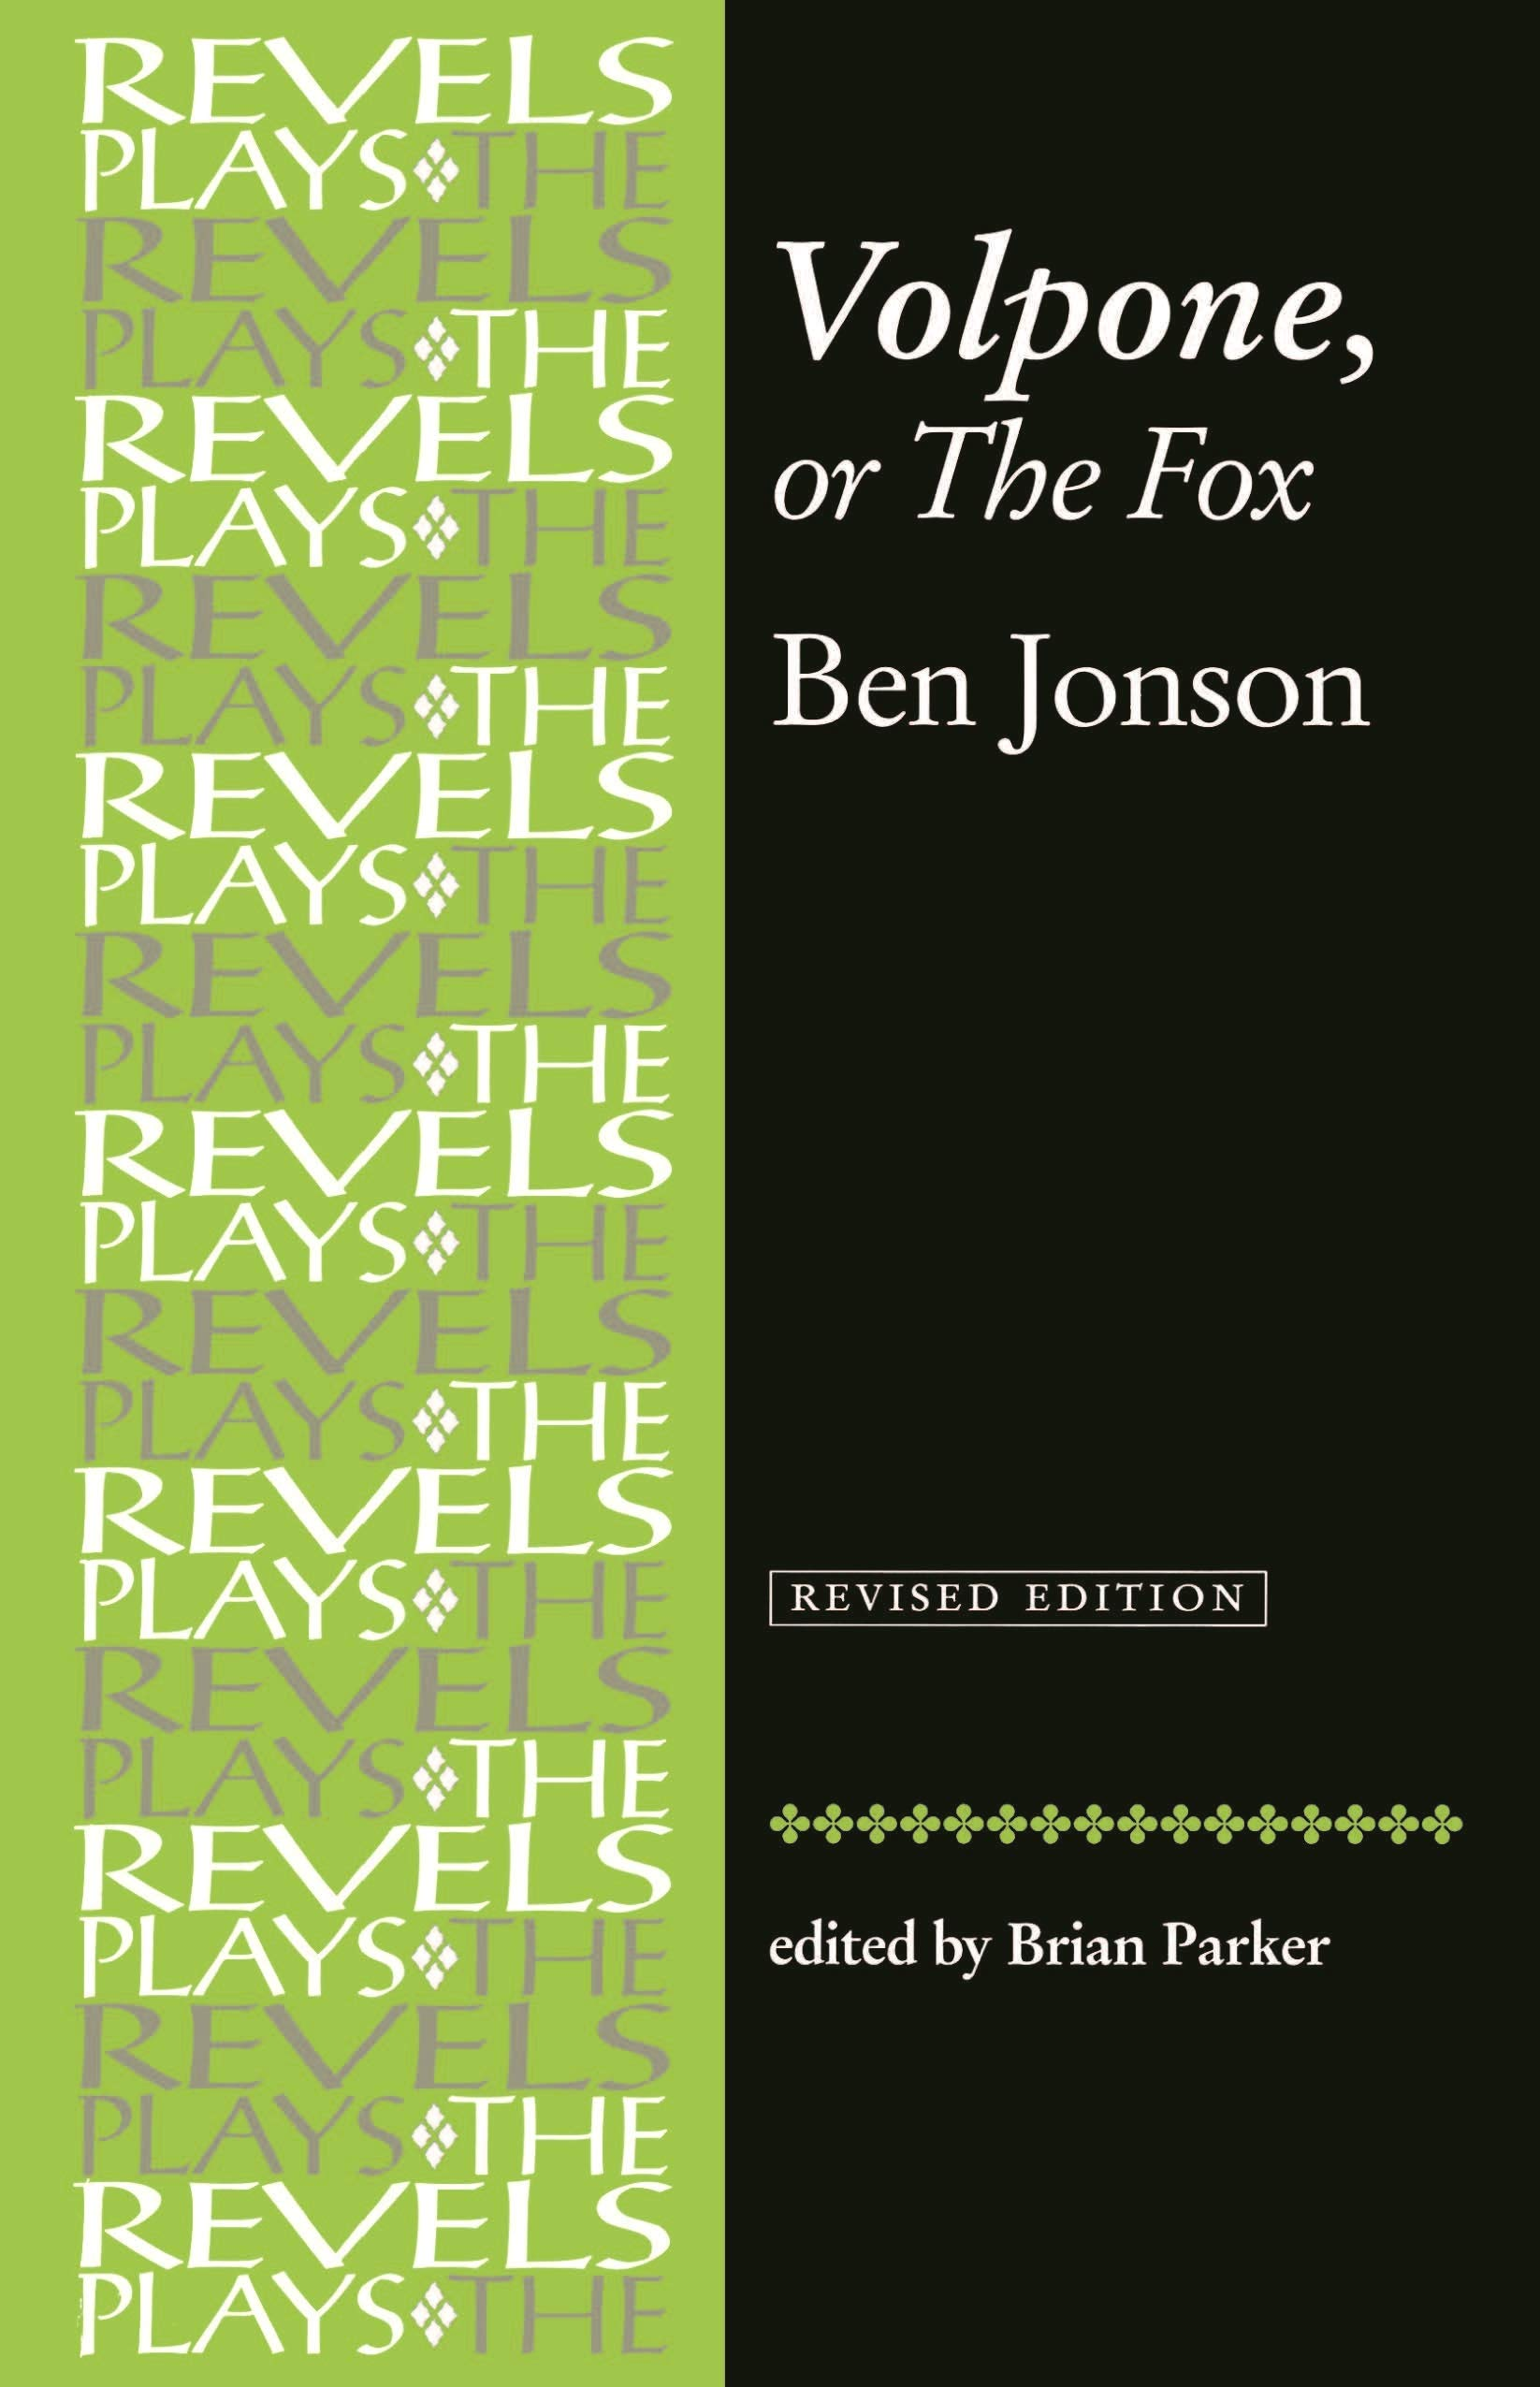 Volpone or the Fox: Ben Johnson (The Revels Plays)